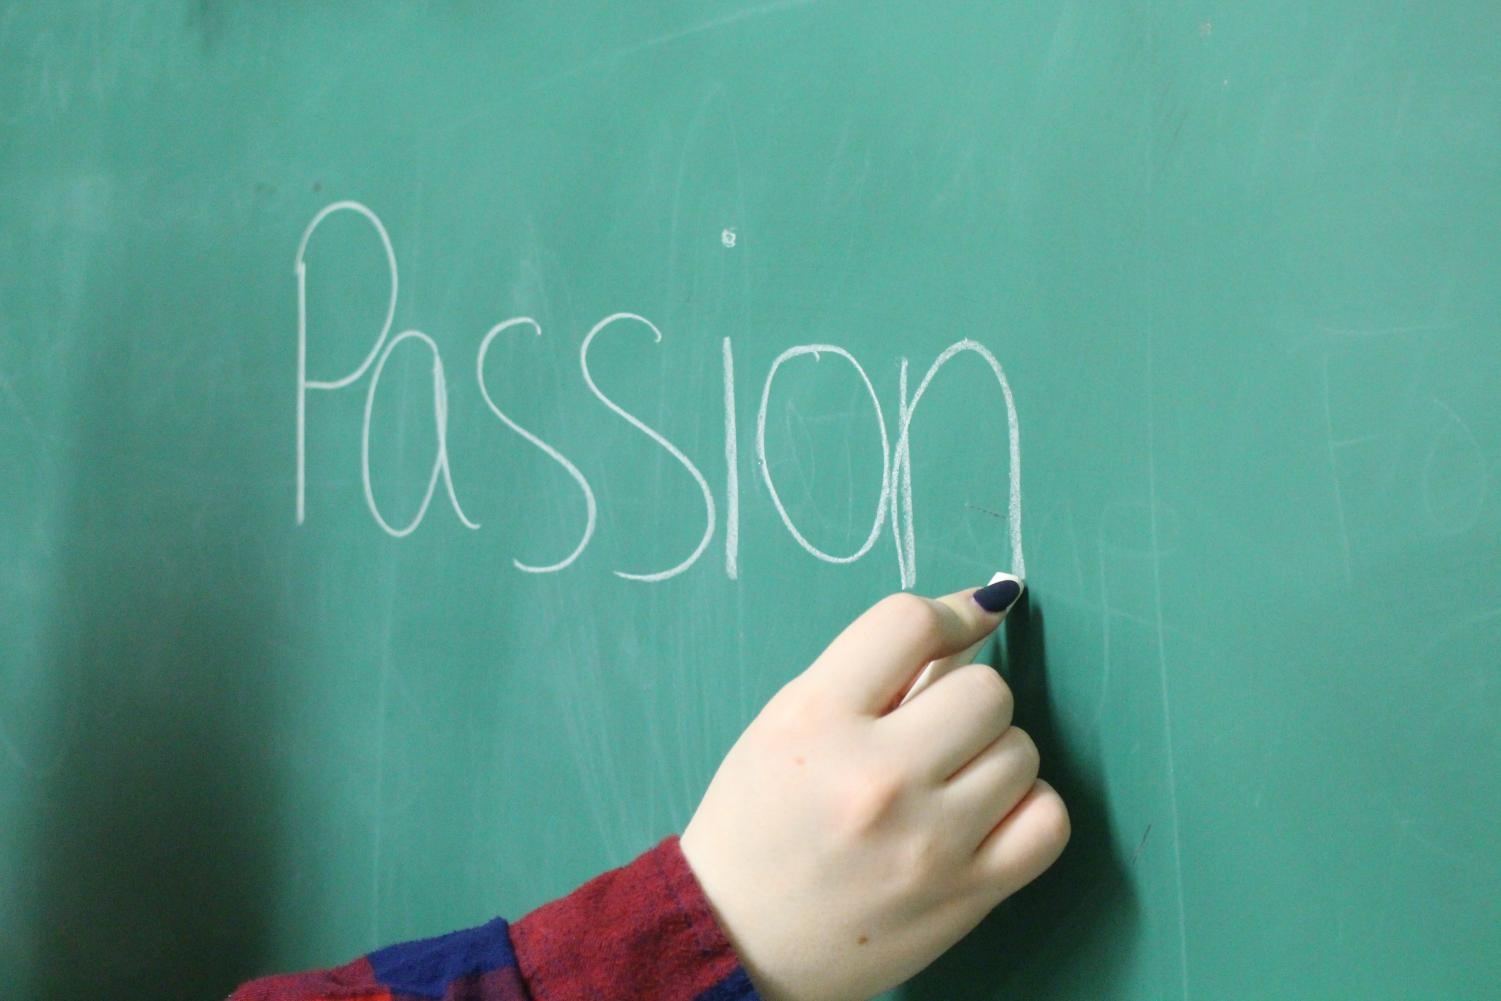 Passion in teaching brings more motivation to students